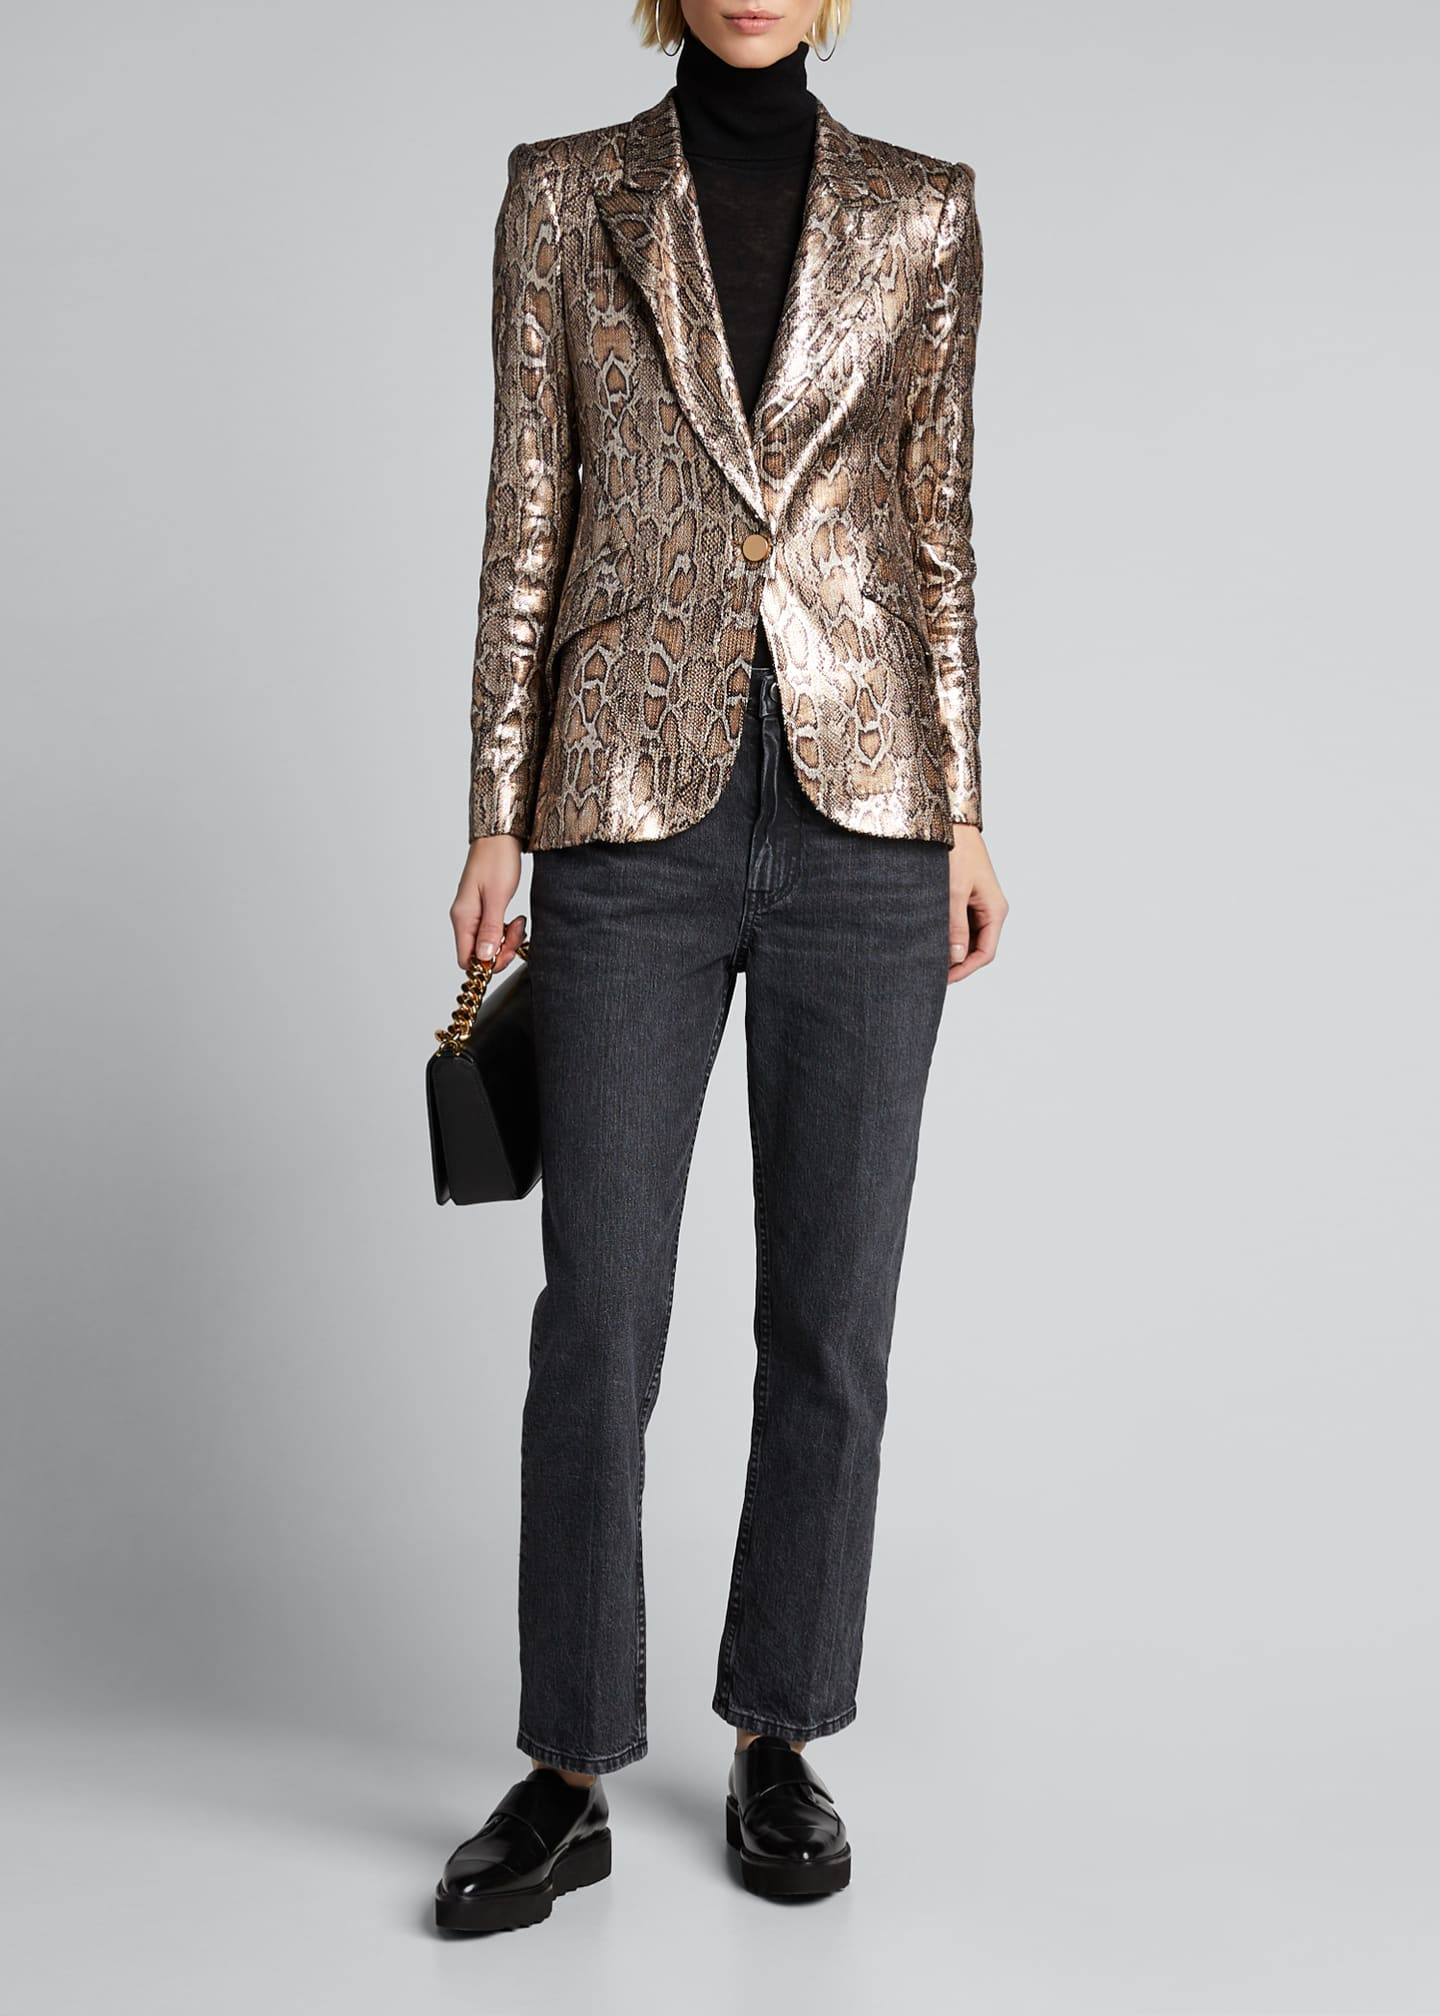 L'Agence Chamberlain Sequined Python Blazer